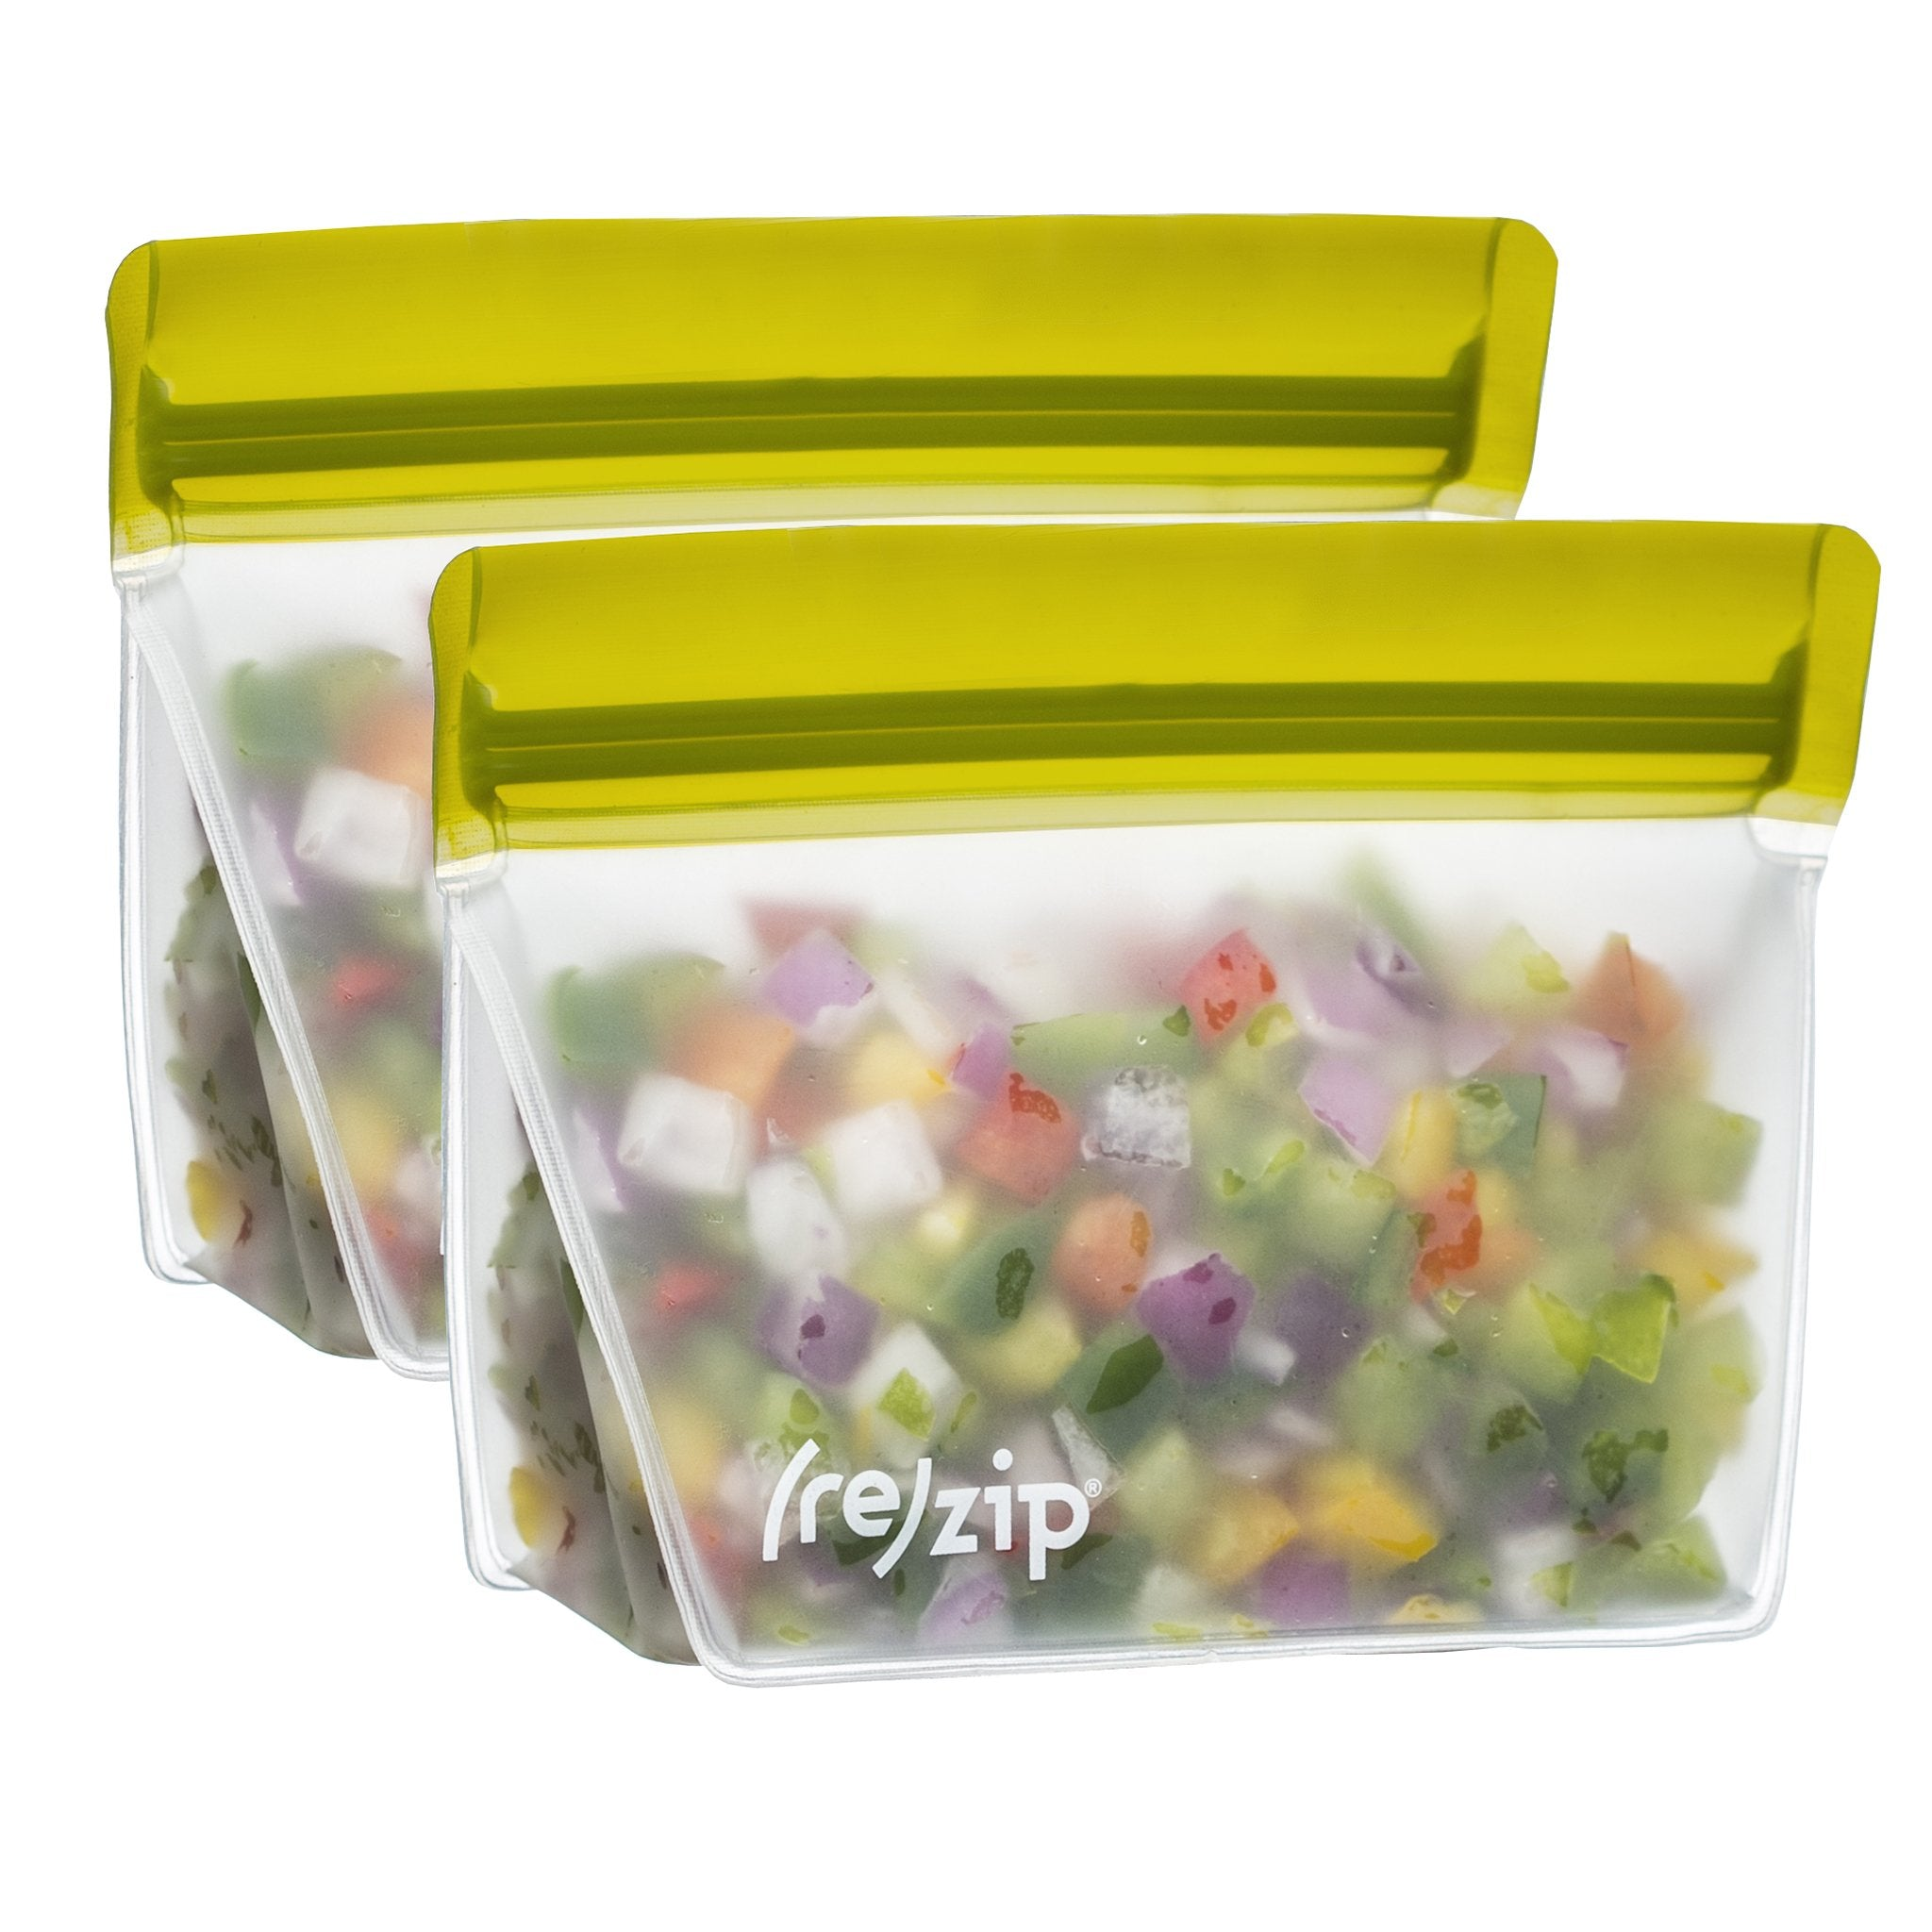 (re)zip - Stand-Up 1/2 Cup Leak Proof Bags